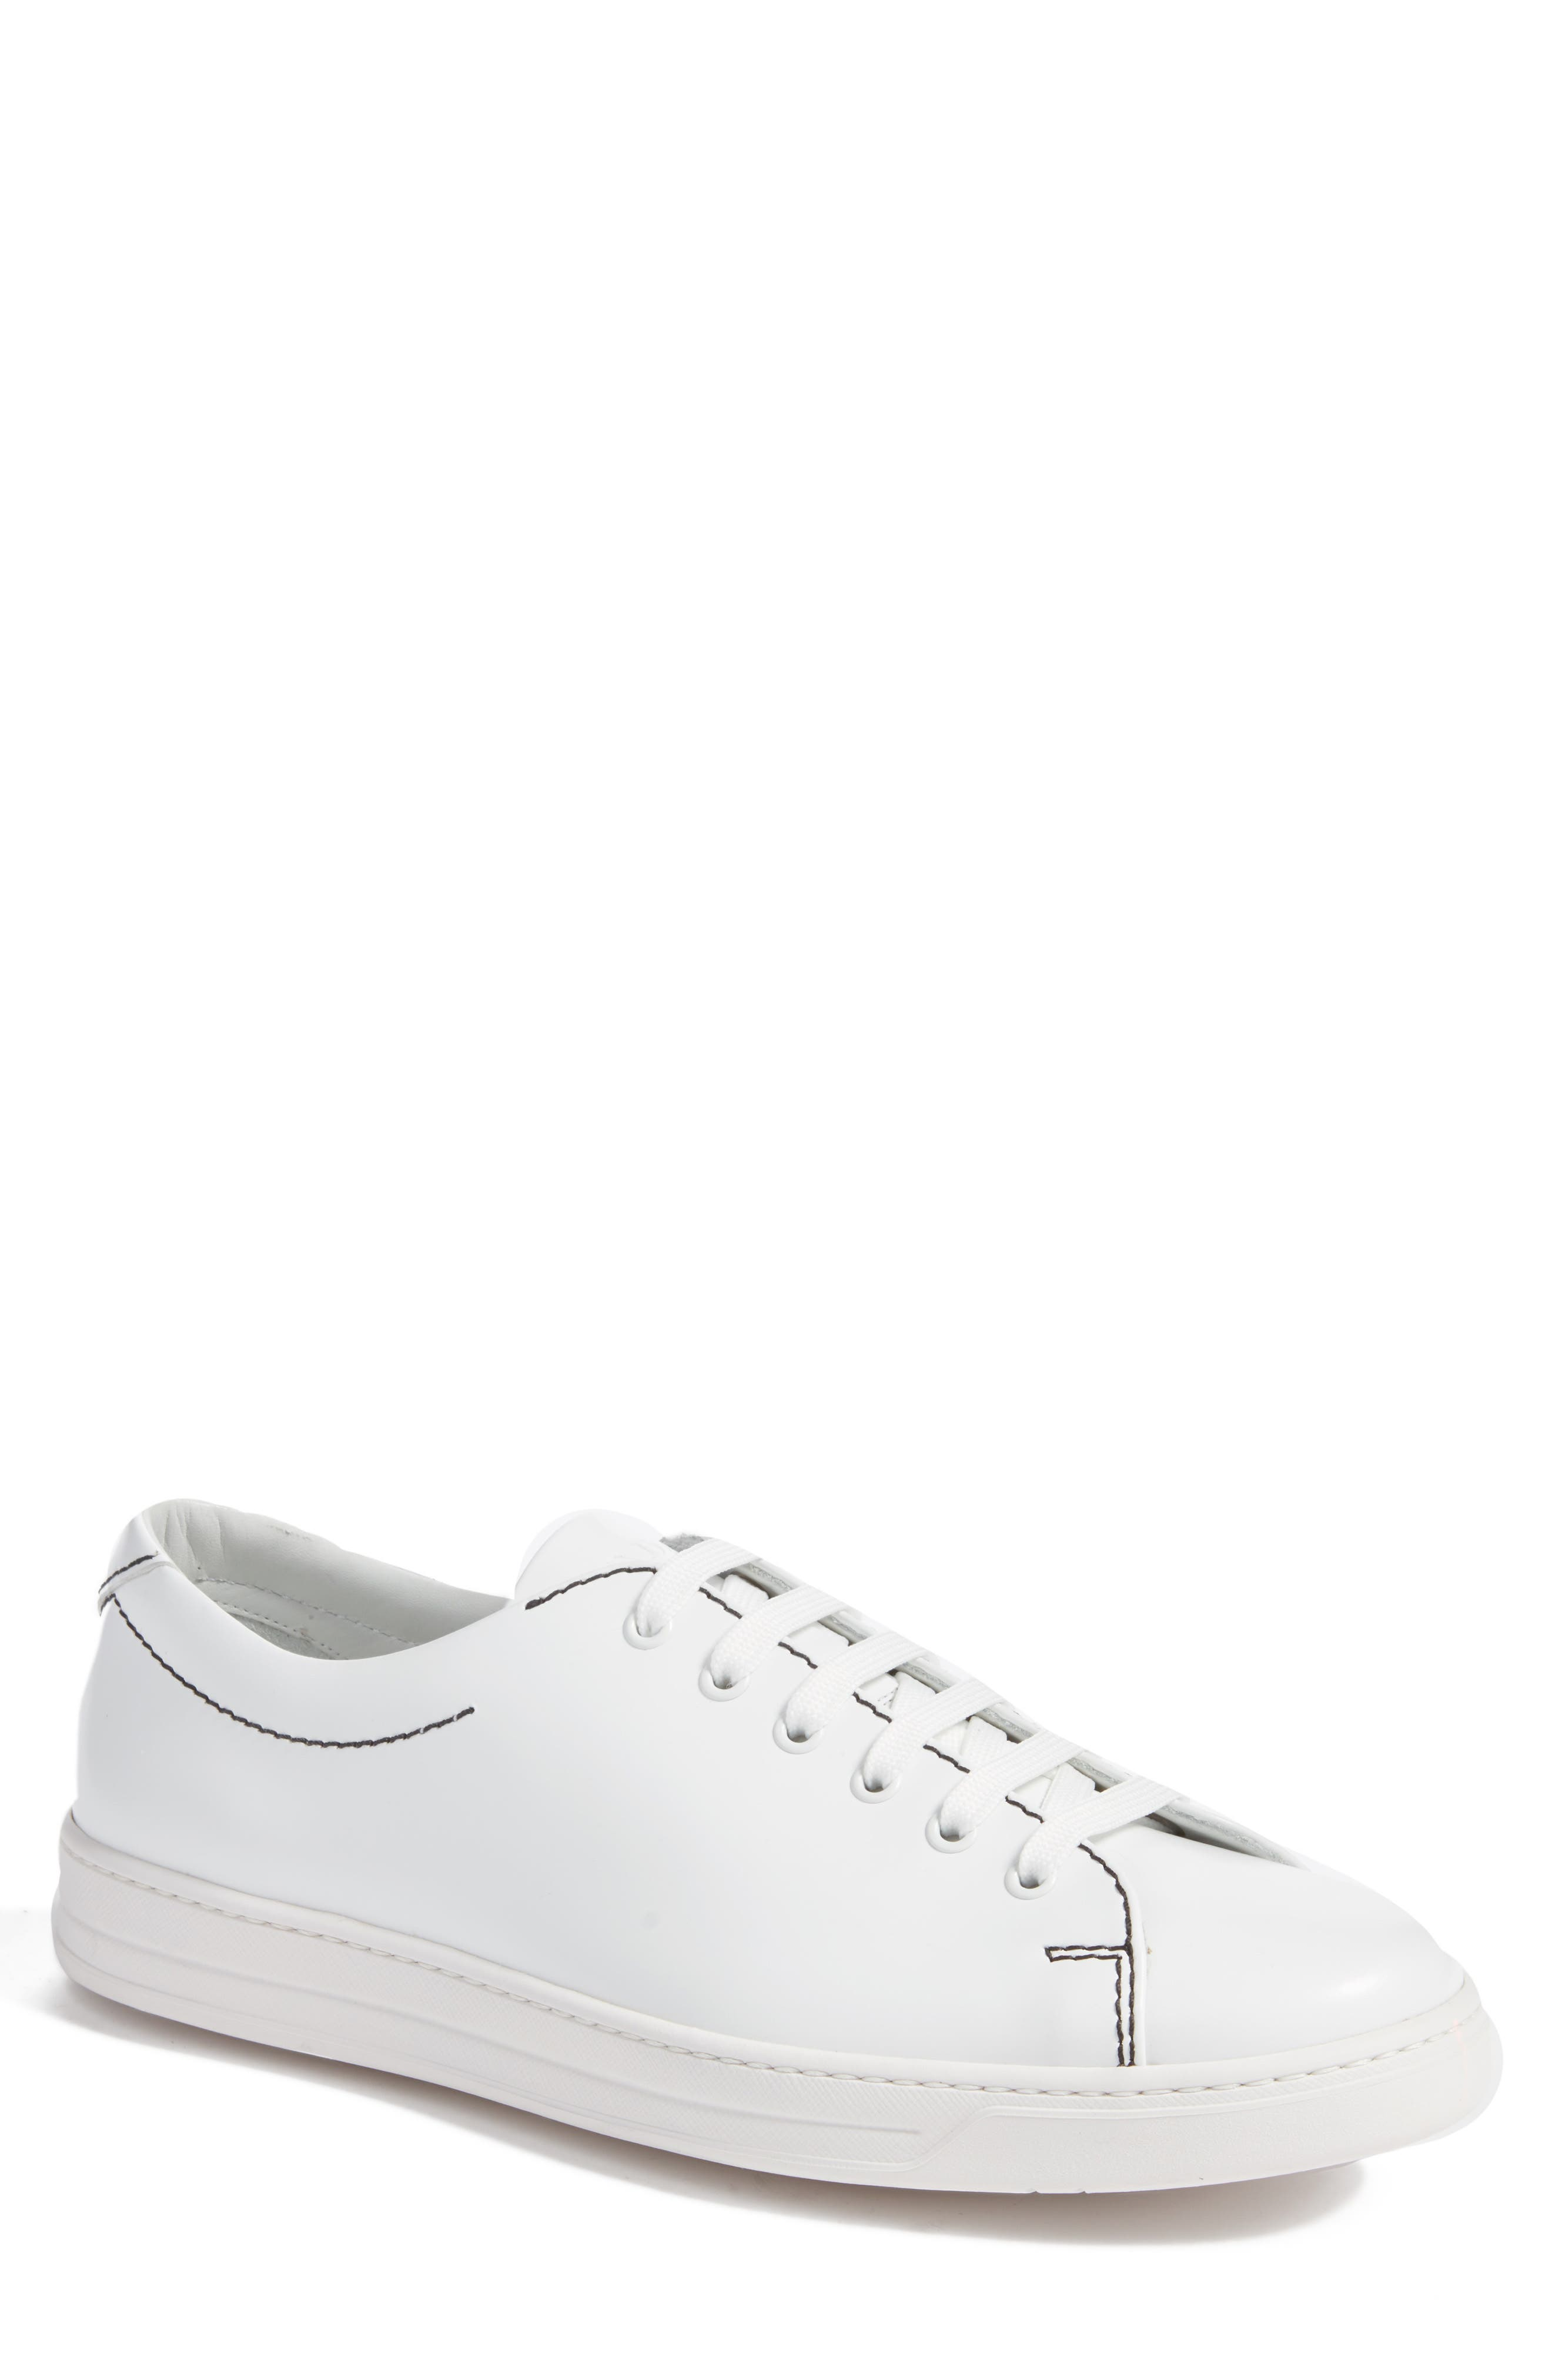 Alternate Image 1 Selected - Prada Linea Rossa Low Top Sneaker (Men)